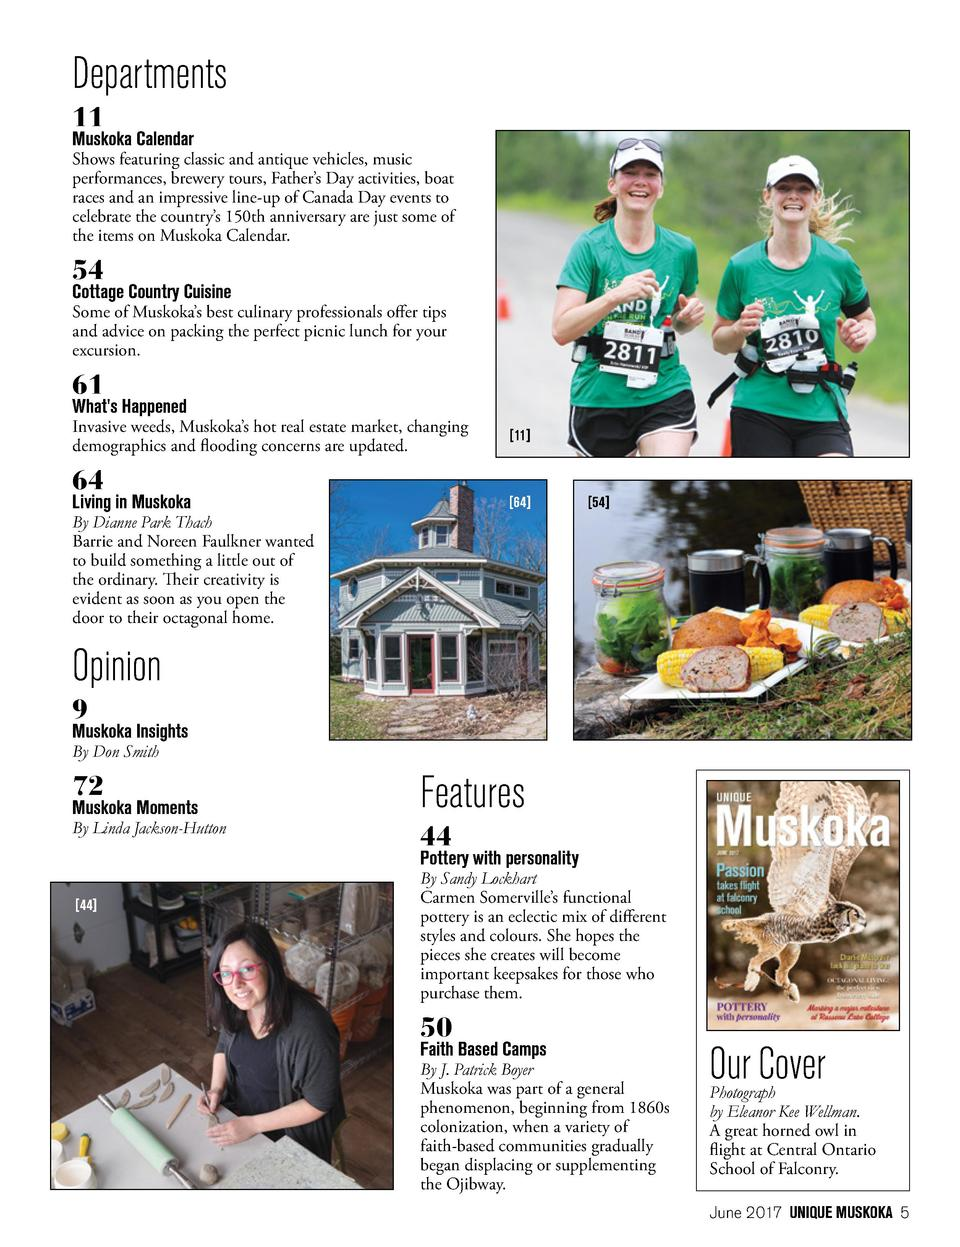 Departments   44   11  Muskoka Calendar  Shows featuring classic and antique vehicles, music performances, brewery tours, ...